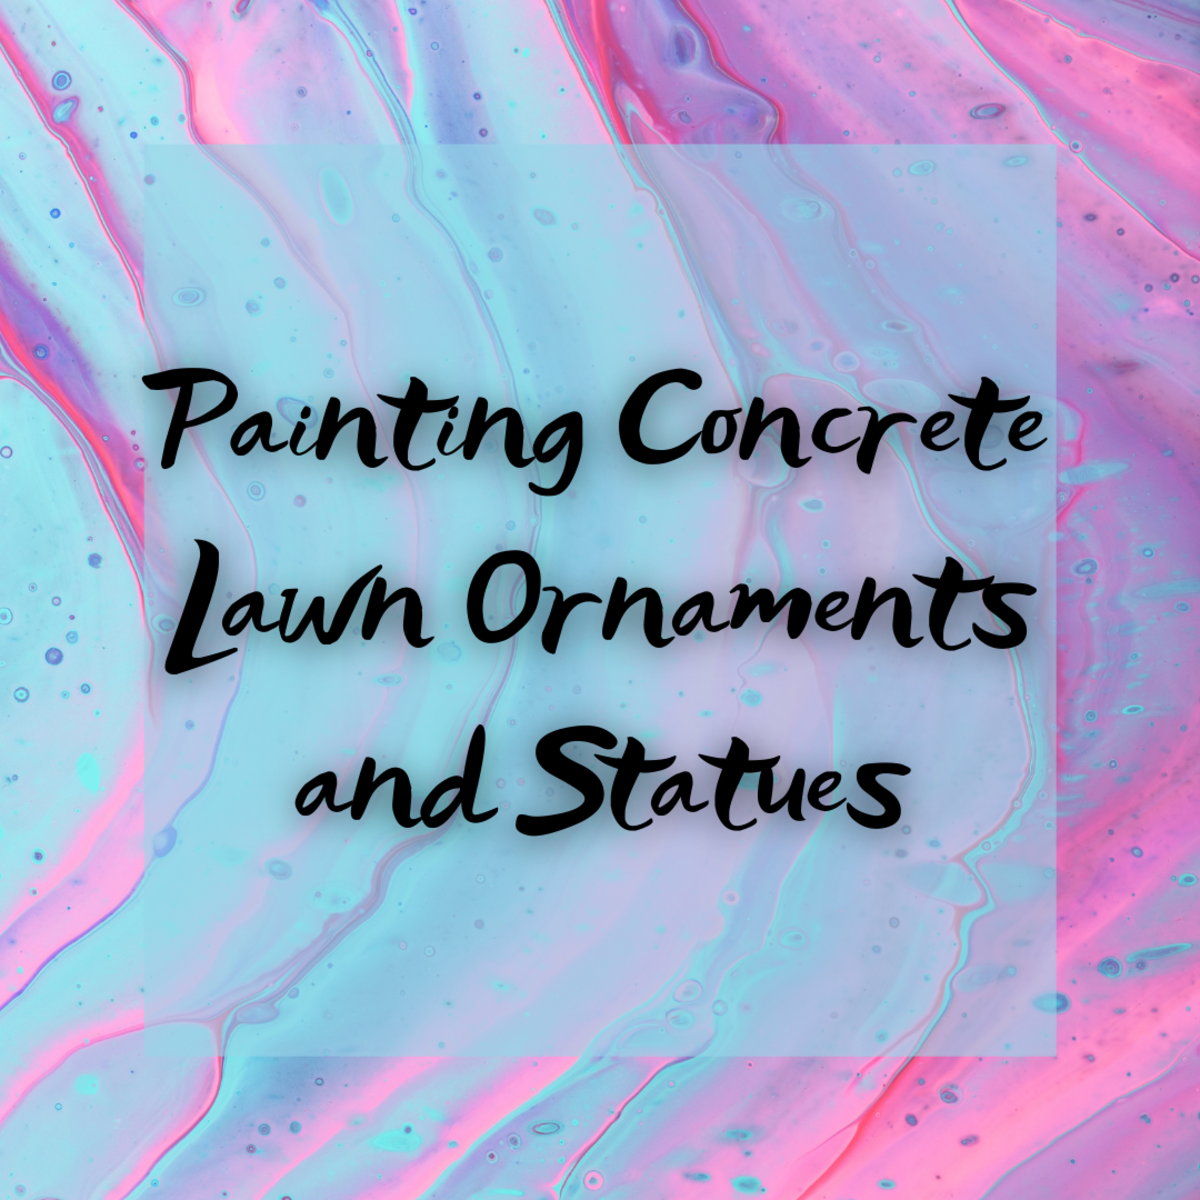 Learn how to successfully paint concrete statues and lawn ornaments in this easy-to-follow guide